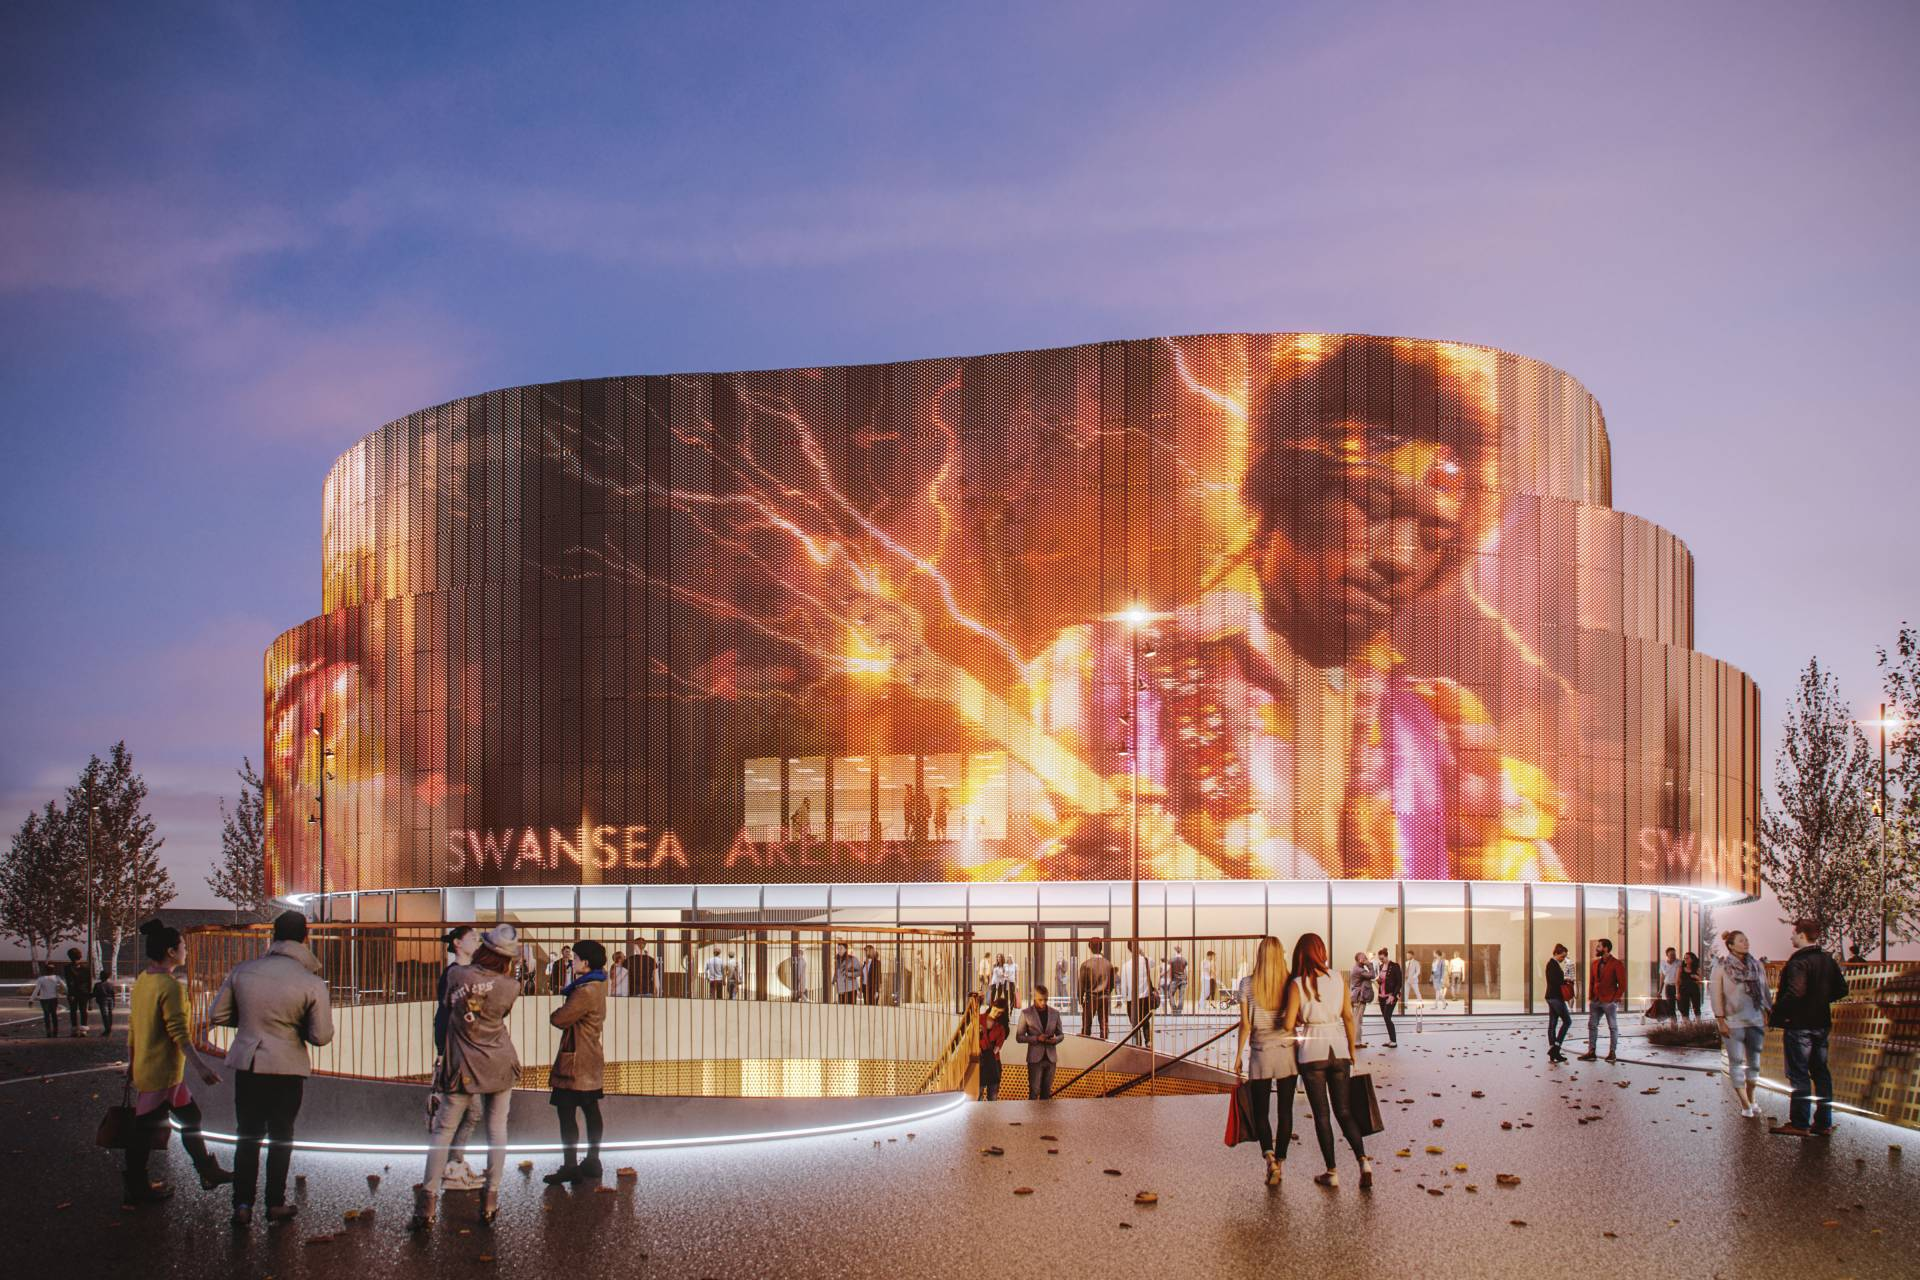 Swansea Arena Interactive Facade showing Jimmy Hendrix